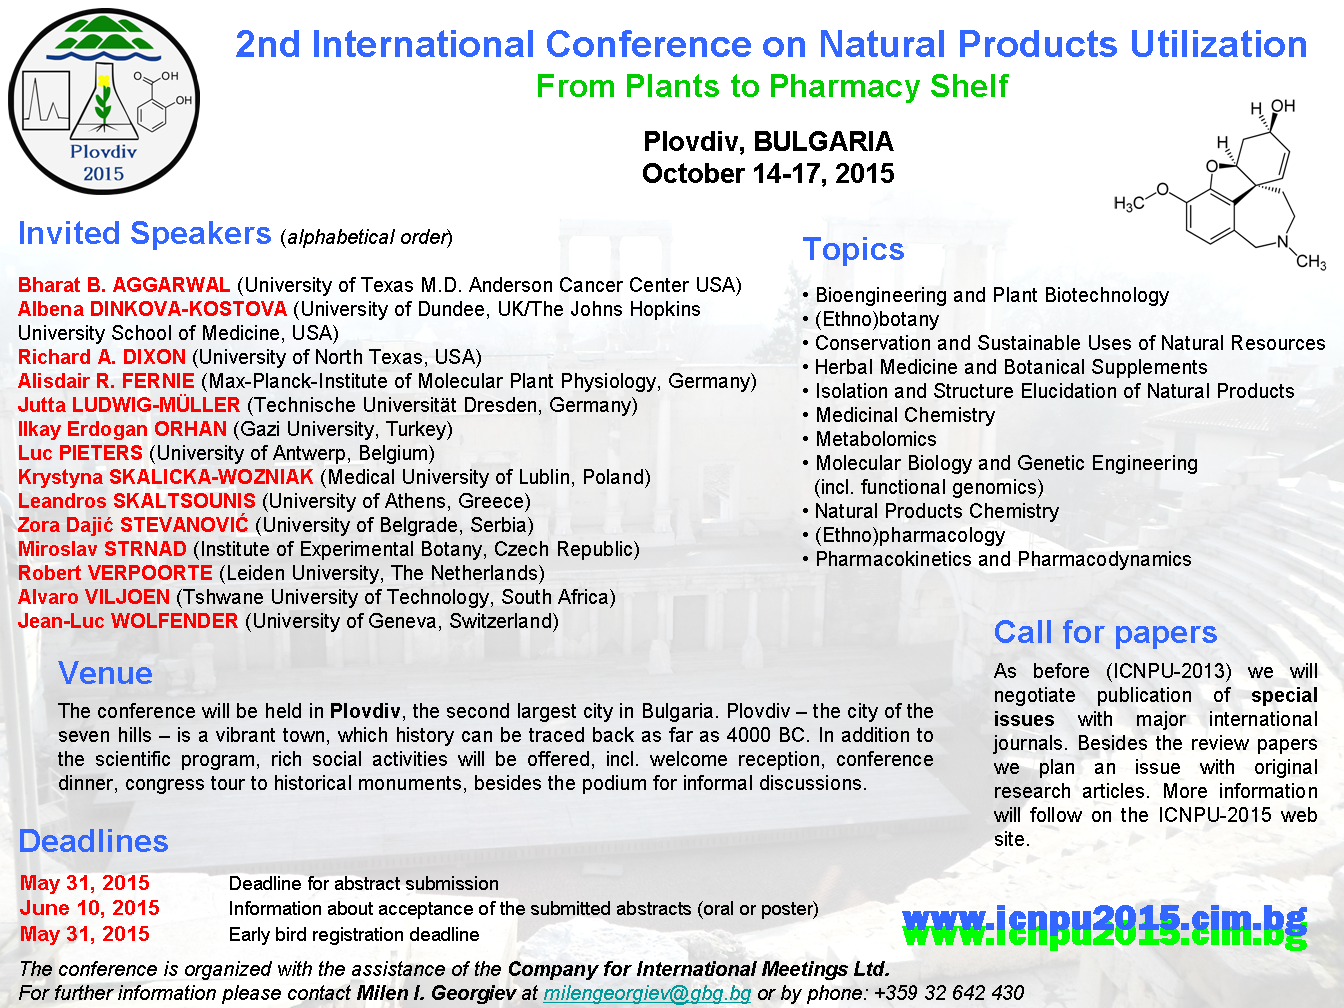 2nd International Conference on Natural Products Utilization: from Plant to Pharmacy Shelf (ICNPU 2015) first circular.